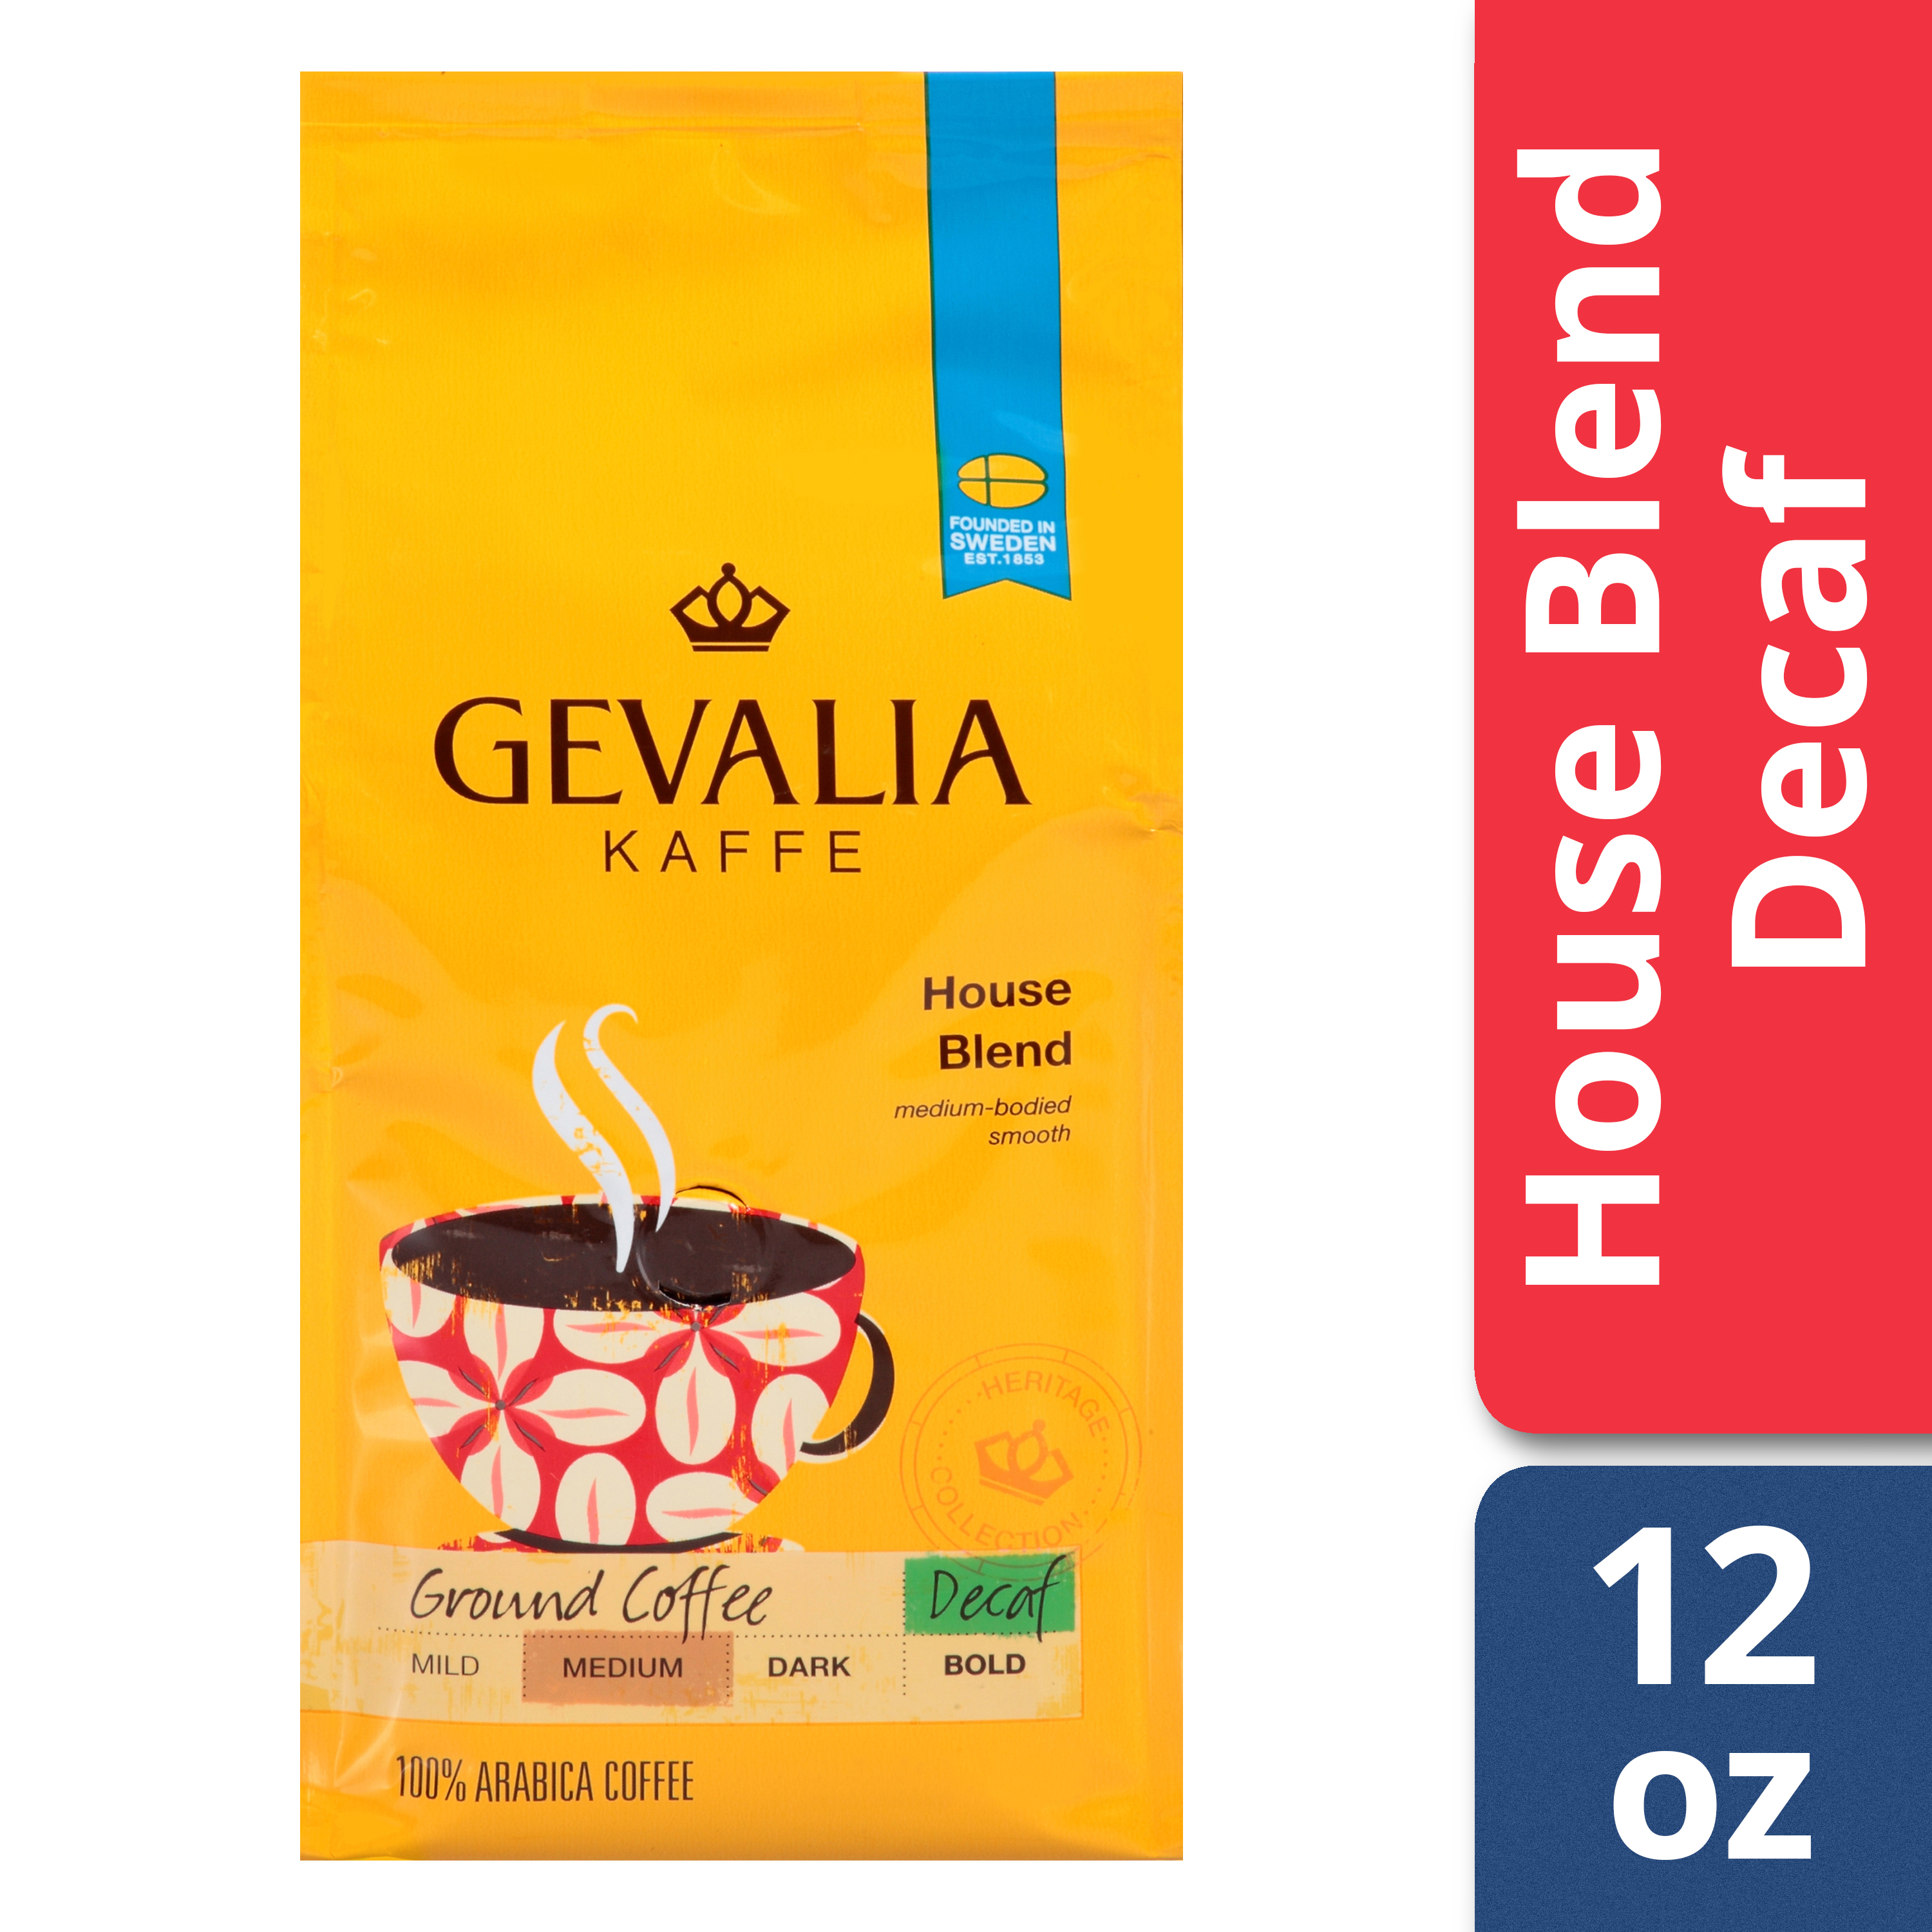 Gevalia Decaf House Blend Ground Coffee, 12 oz Bag